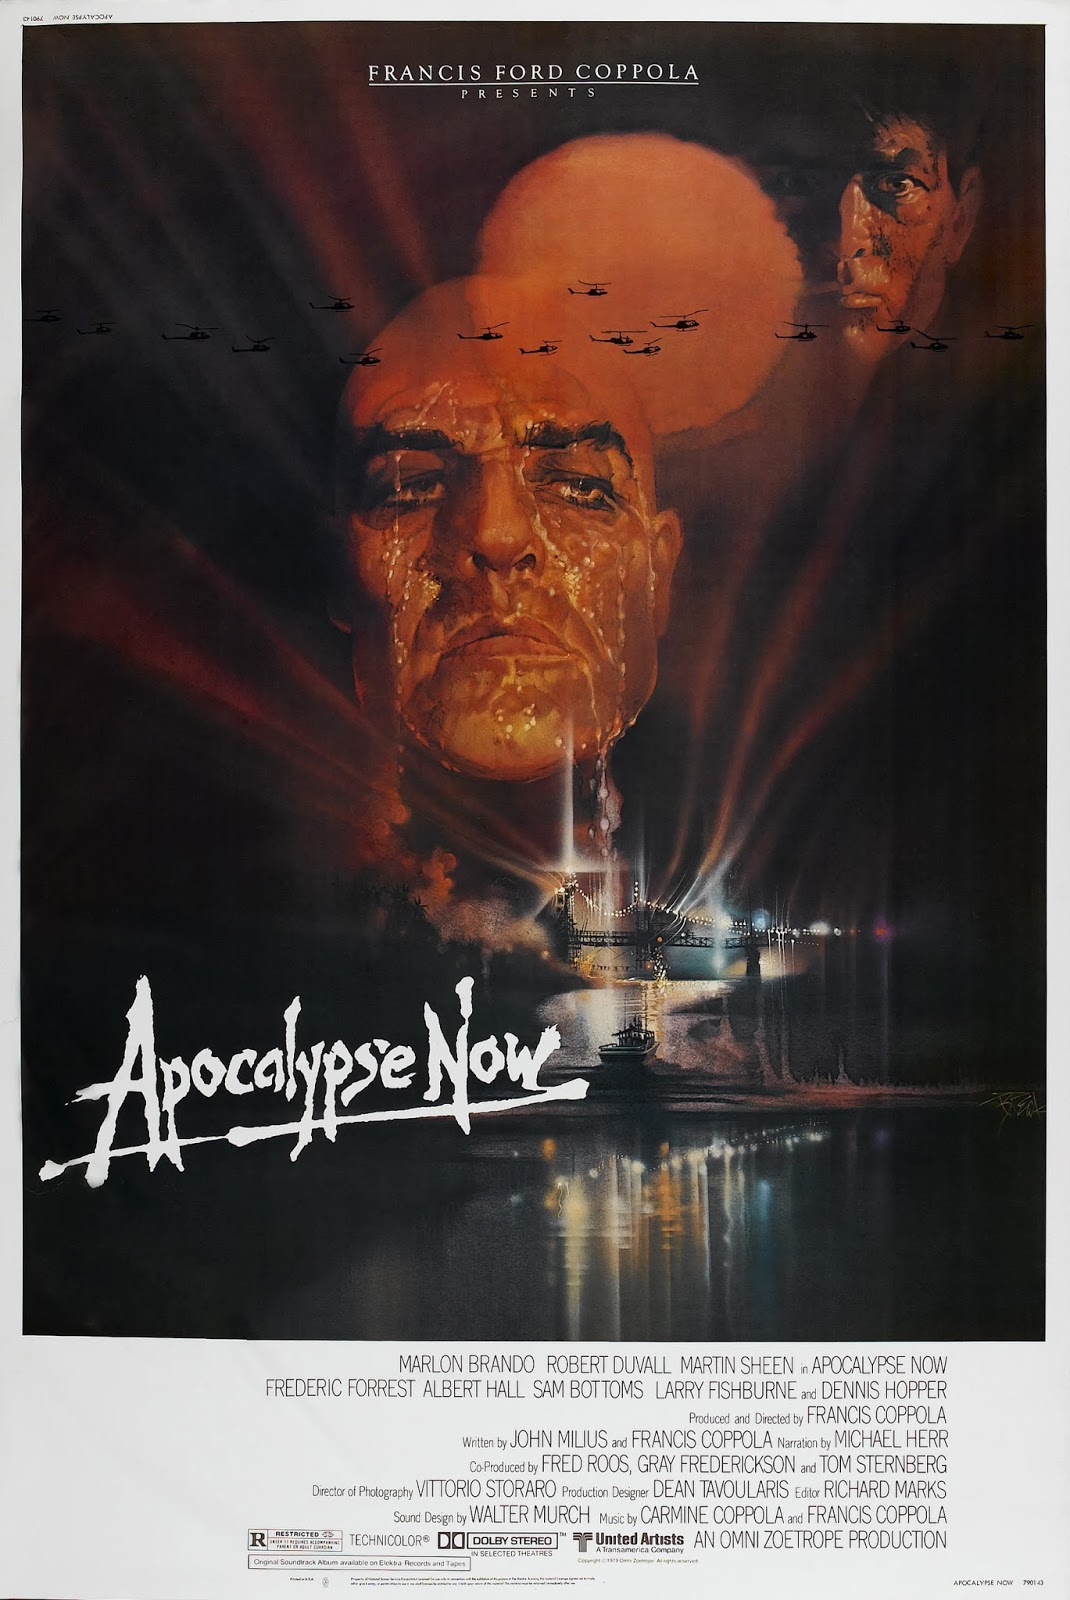 amateur critic society francis ford coppola s apocalypse now francis ford coppola s apocalypse now considered as a reading of joseph conrad s heart of darkness